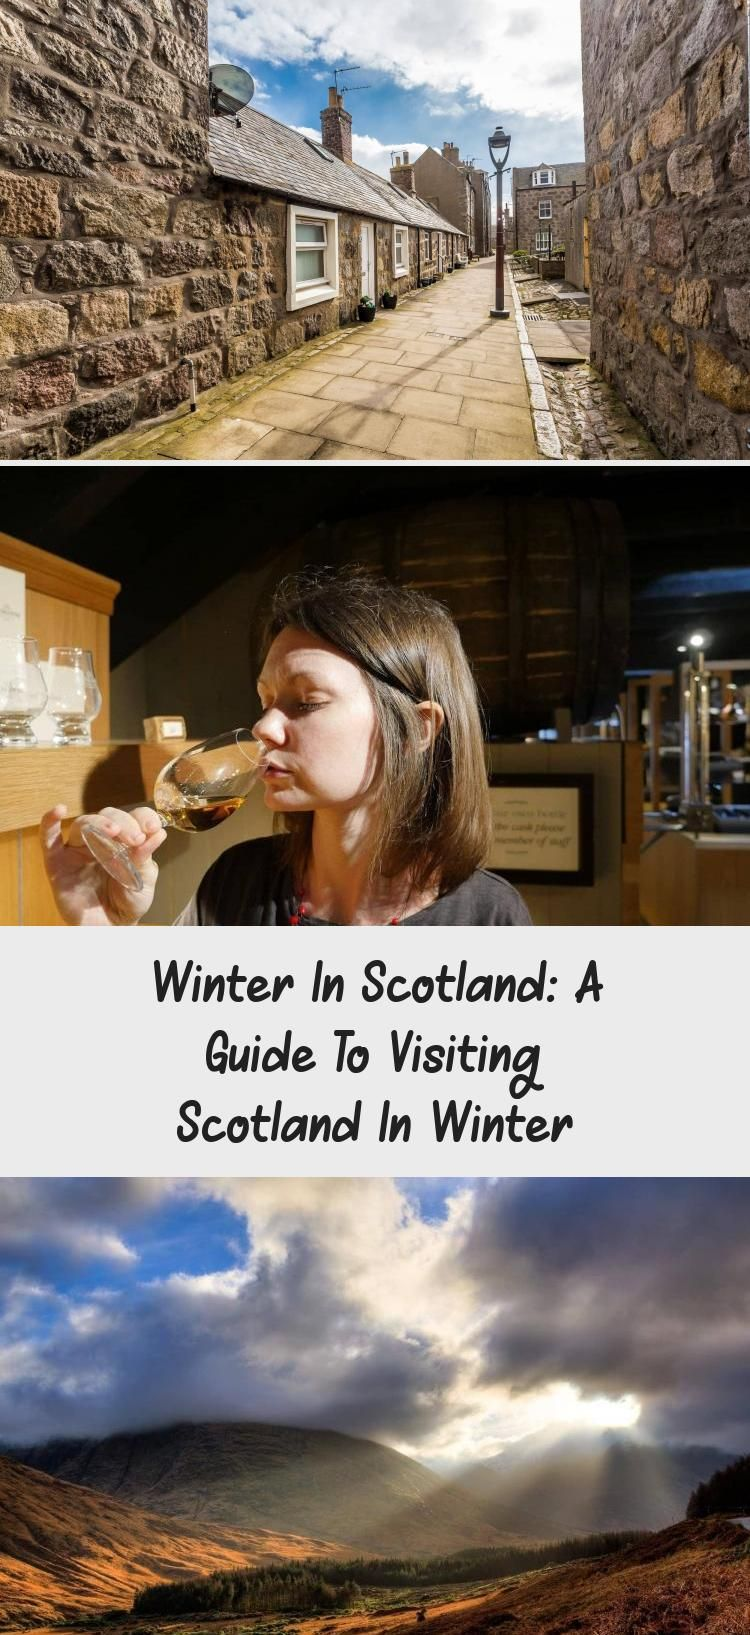 Everything you need to know about visiting Scotland in Winter from what to do through to what to pack and tips for planning your trip